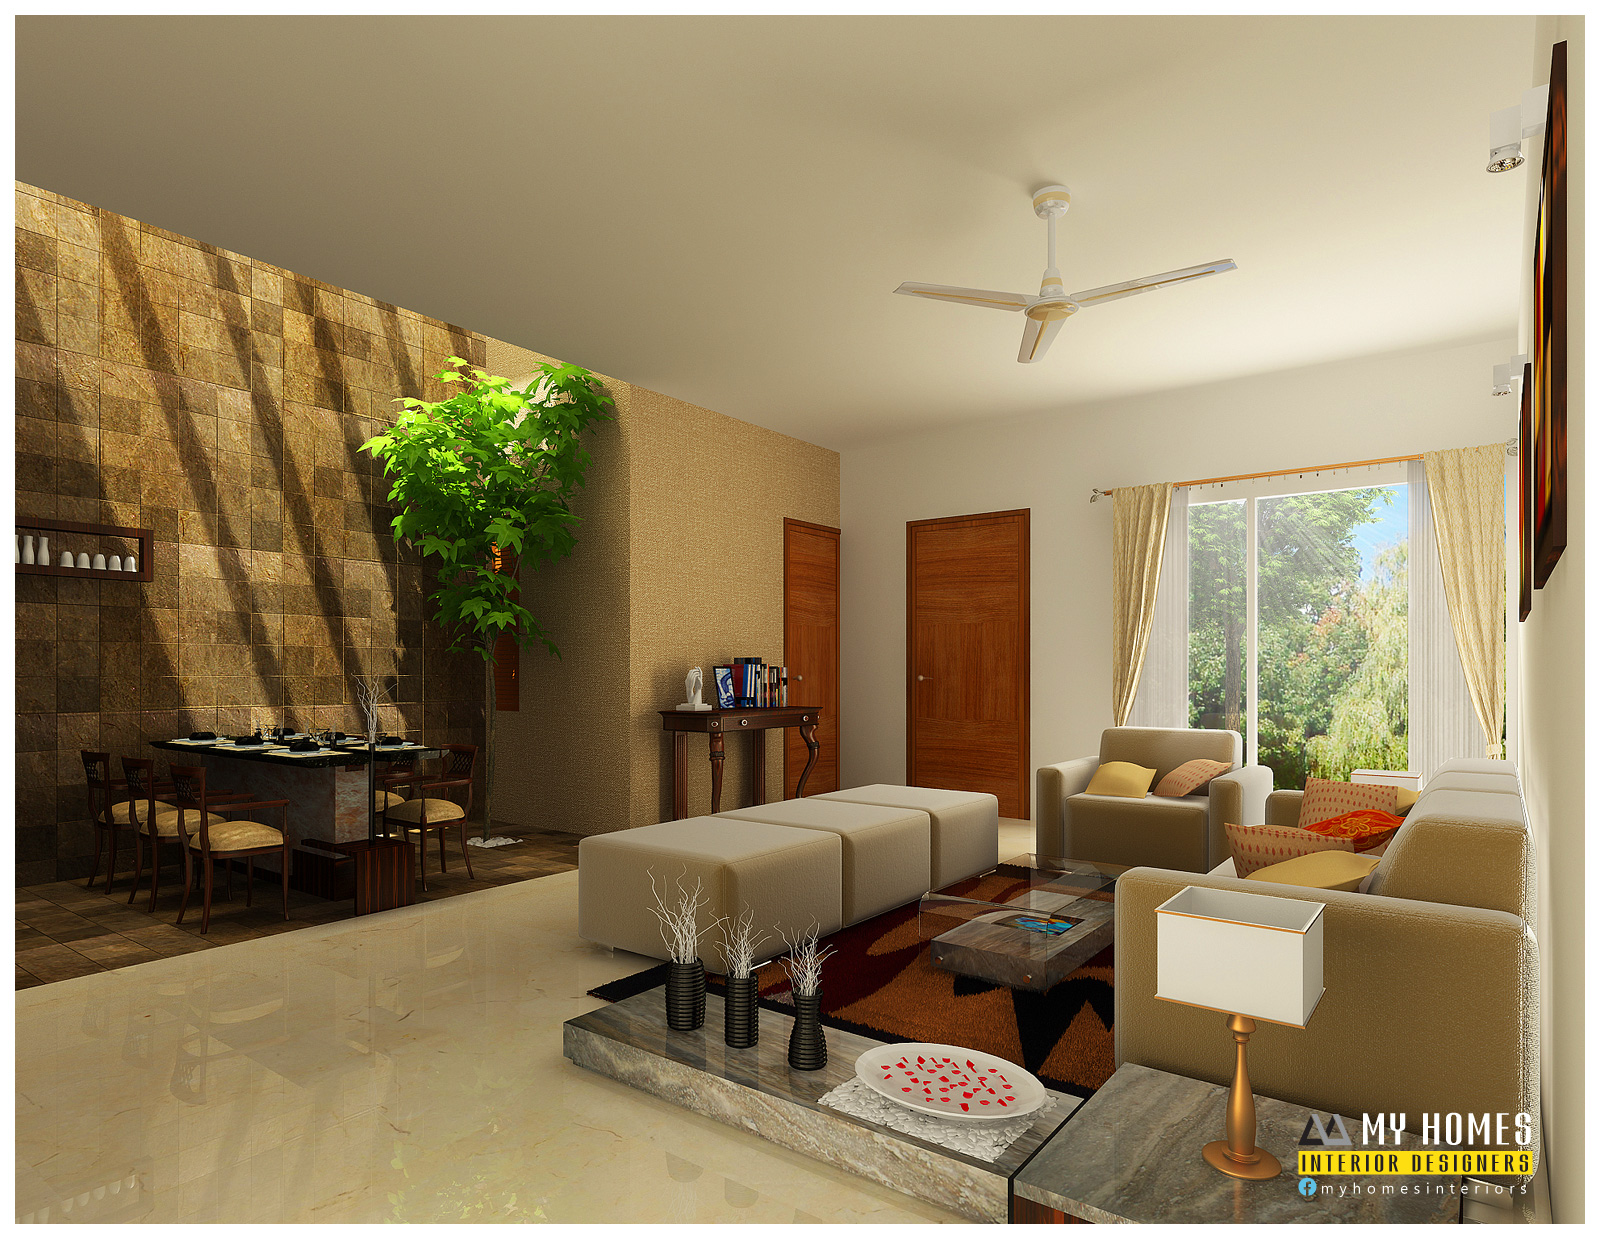 Kerala House Interiors Home Design Plan